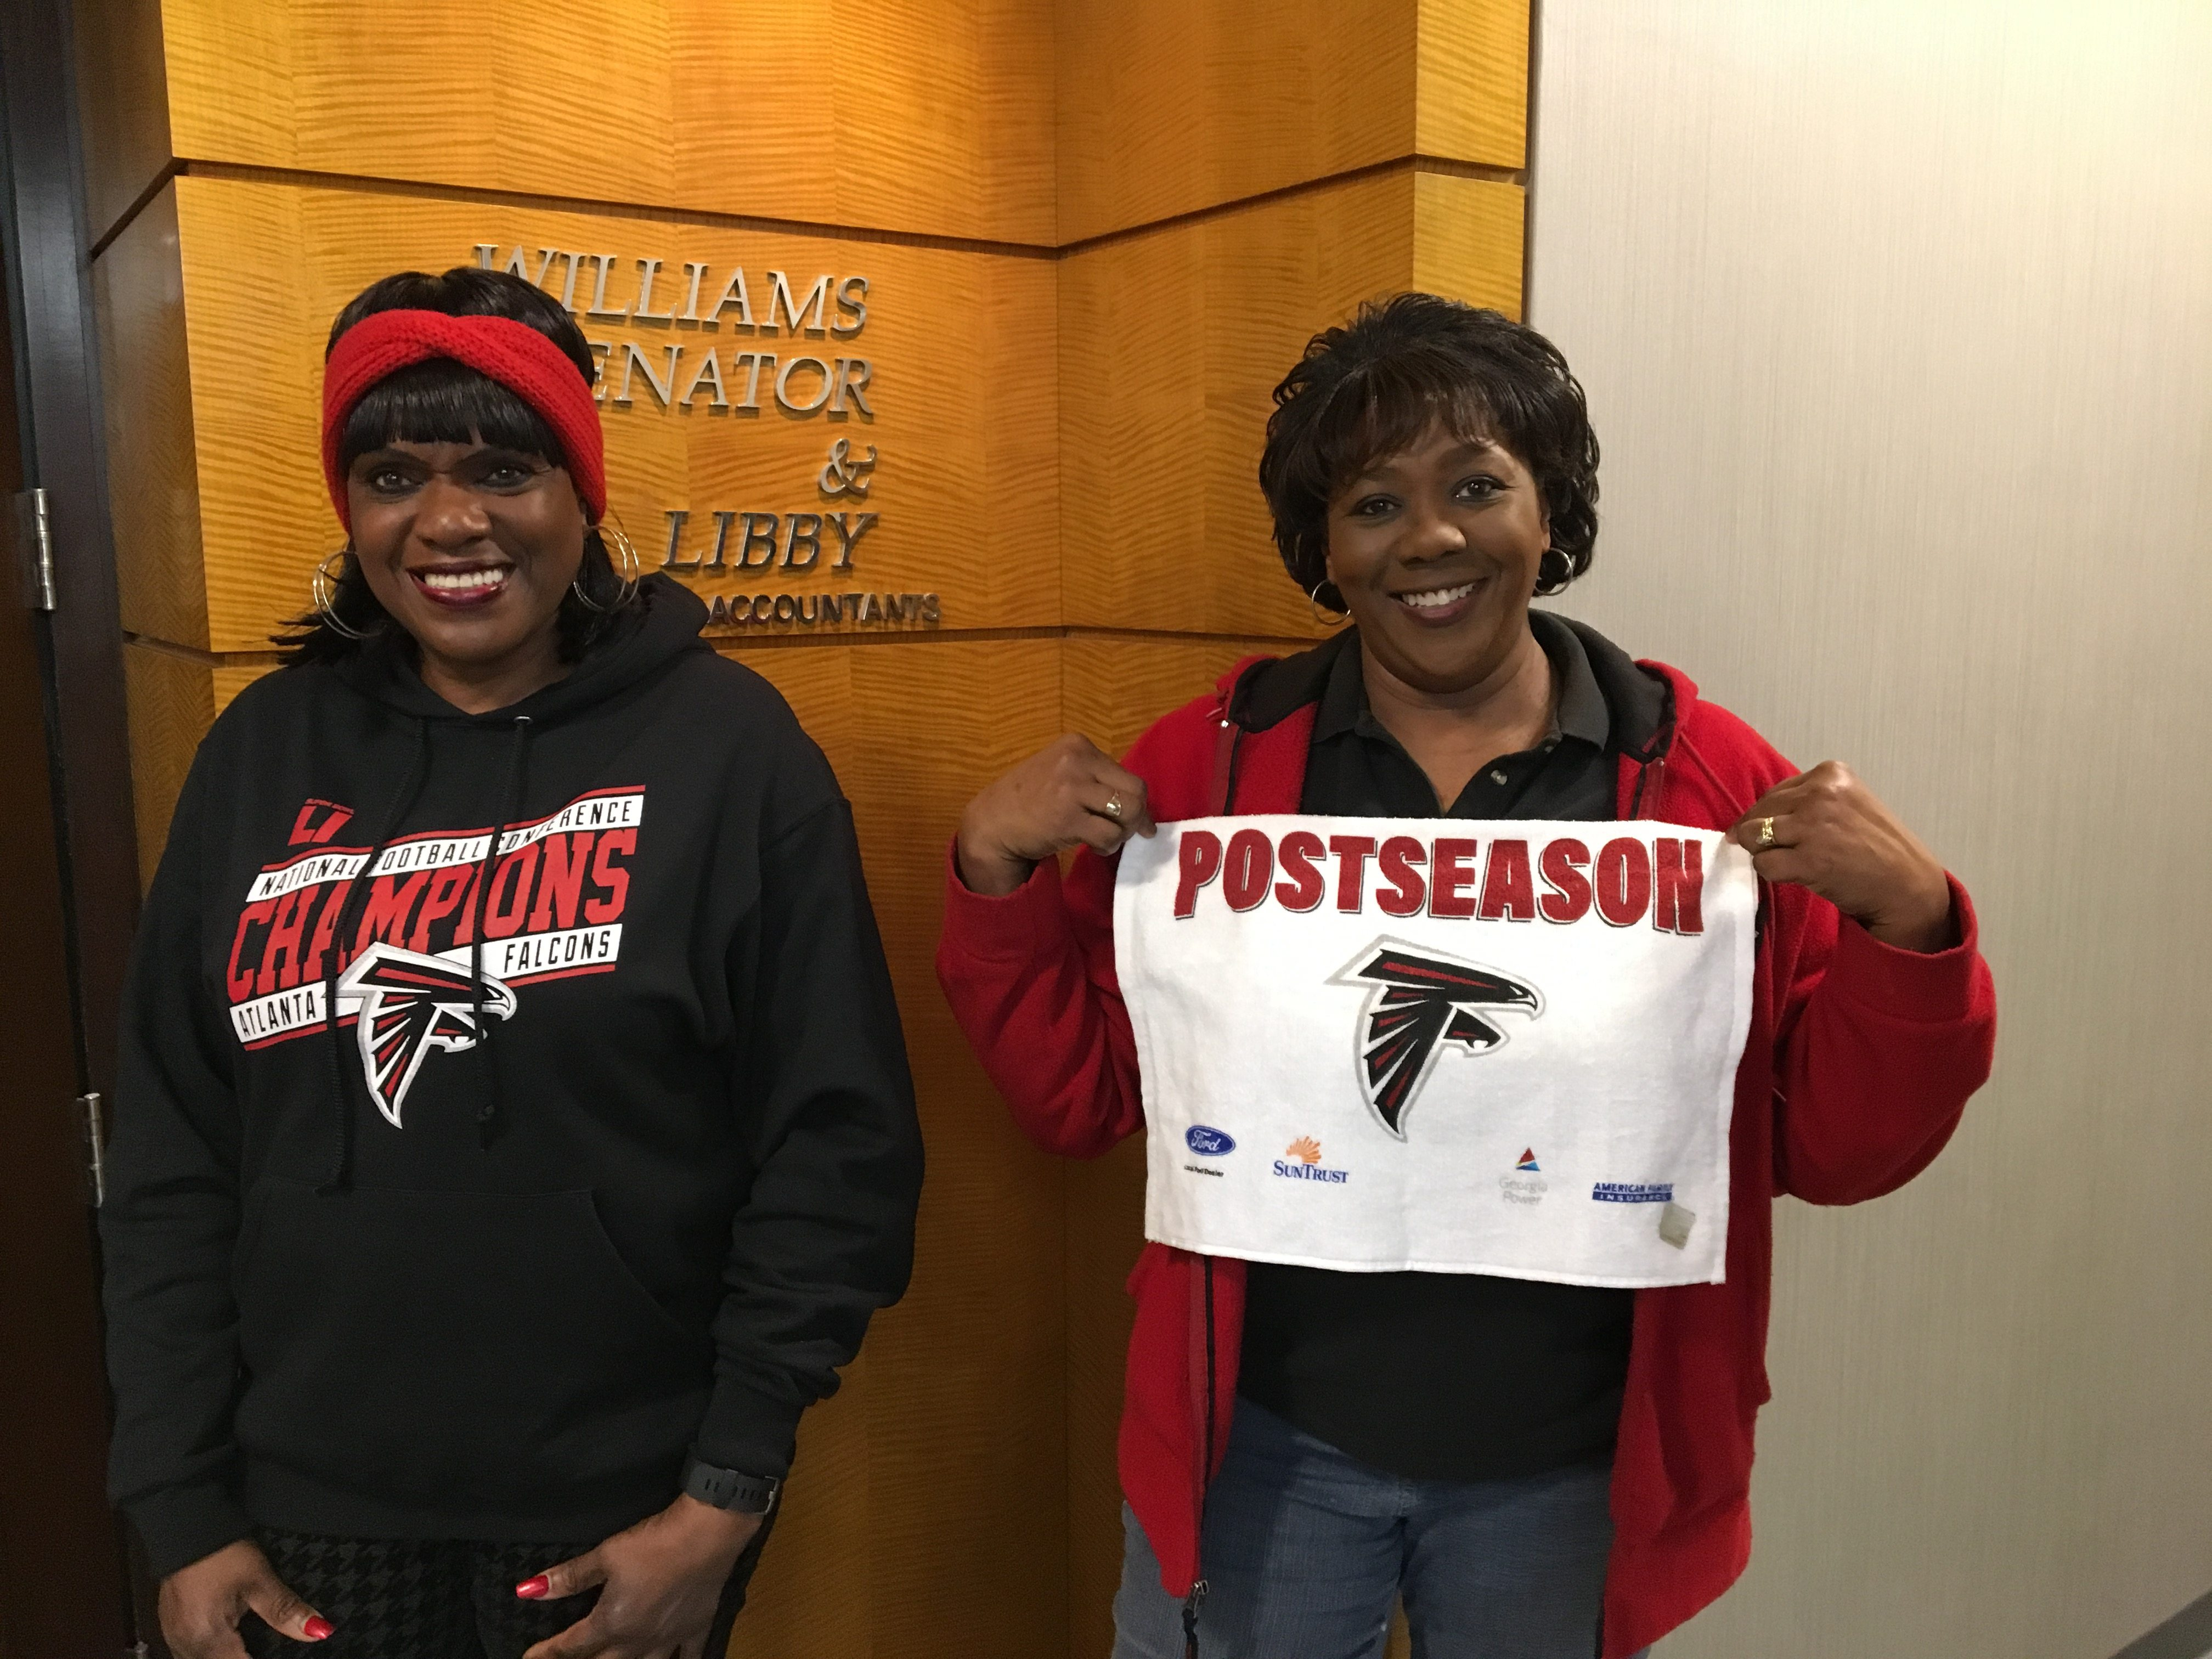 Ann and Brenda are ready to Rise Up!